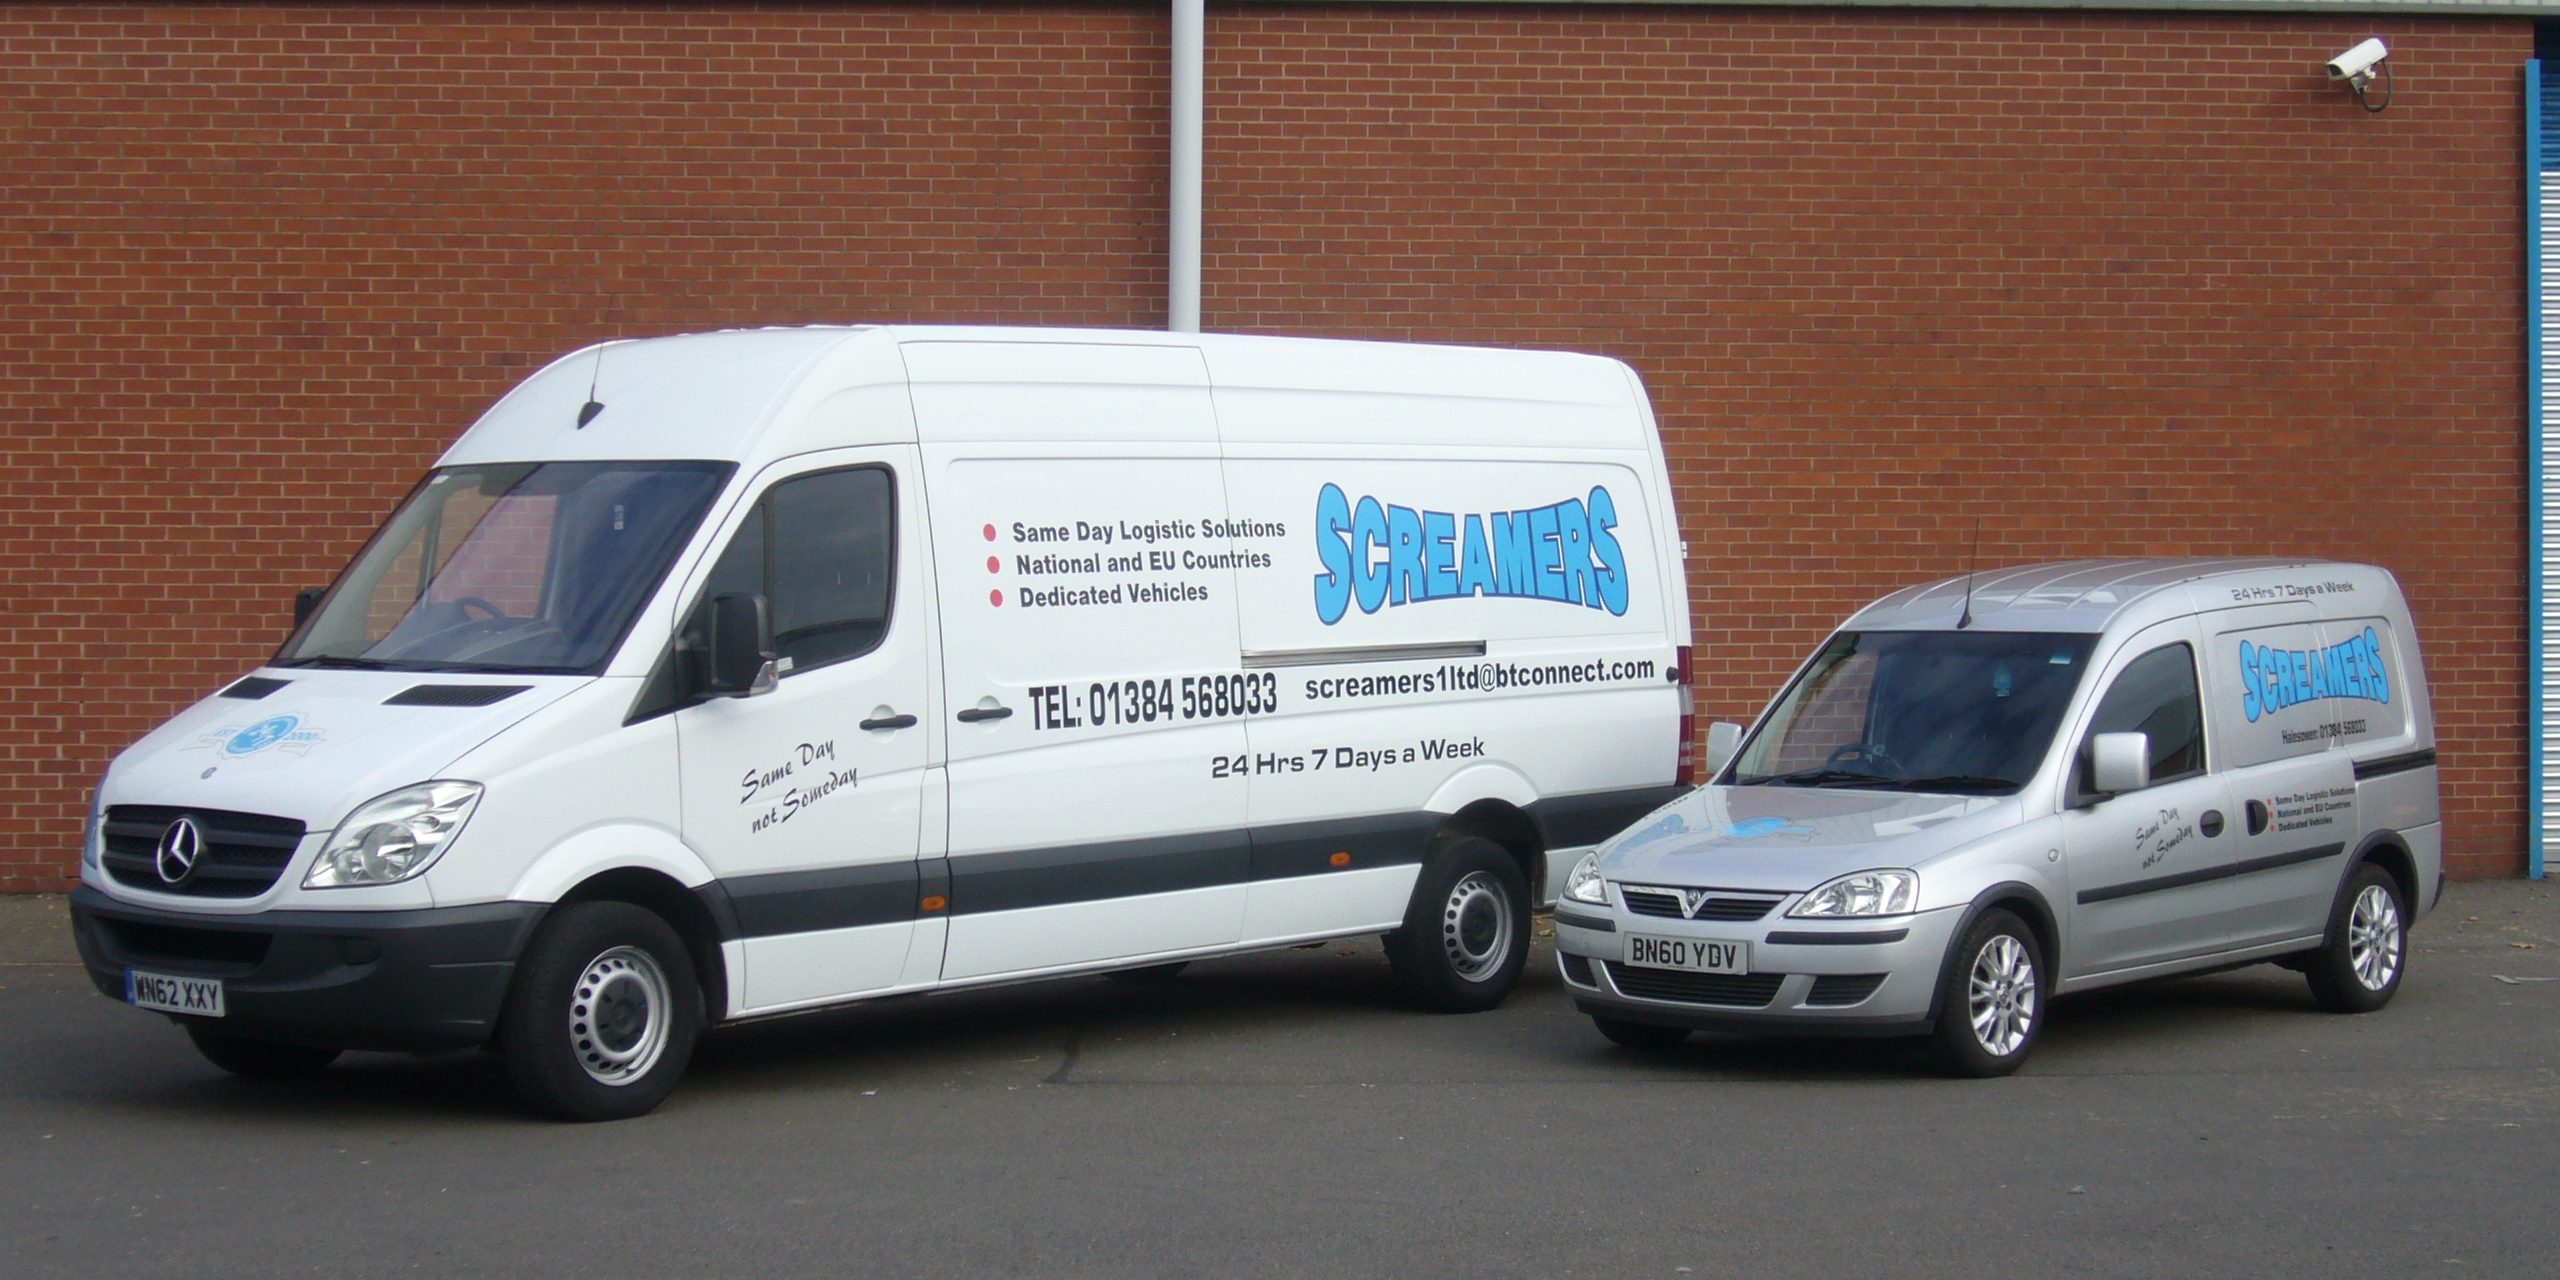 Screamers Ltd delivery vans